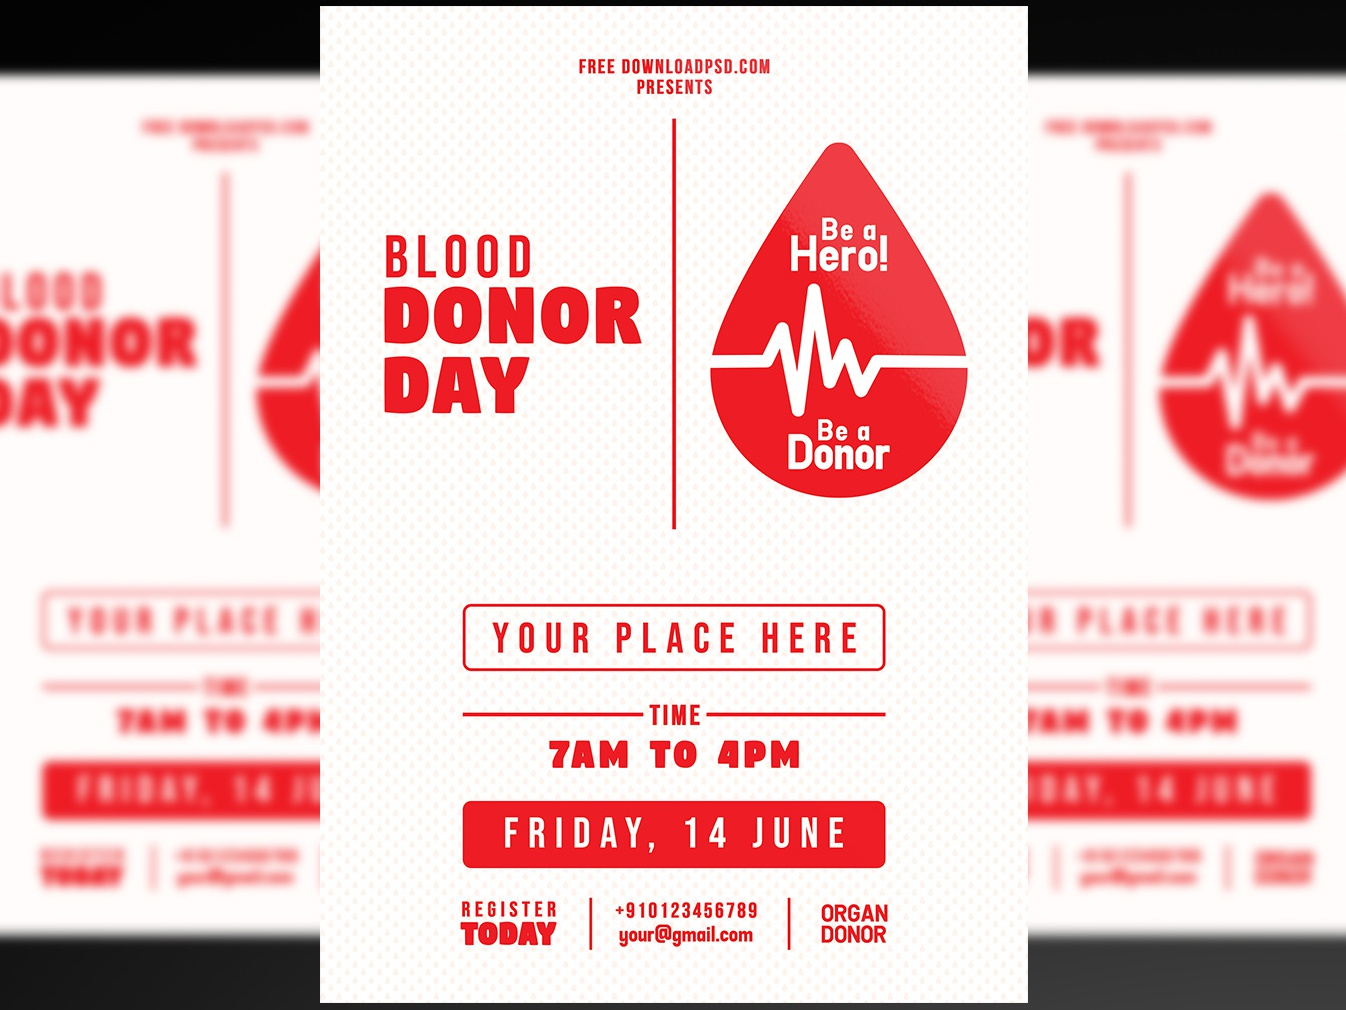 Blood Donor Day Flyer + Social Media organ donor blood donation international blood donor day social media post social media blood donor social media blood donor blood donor day flyer blood donor day